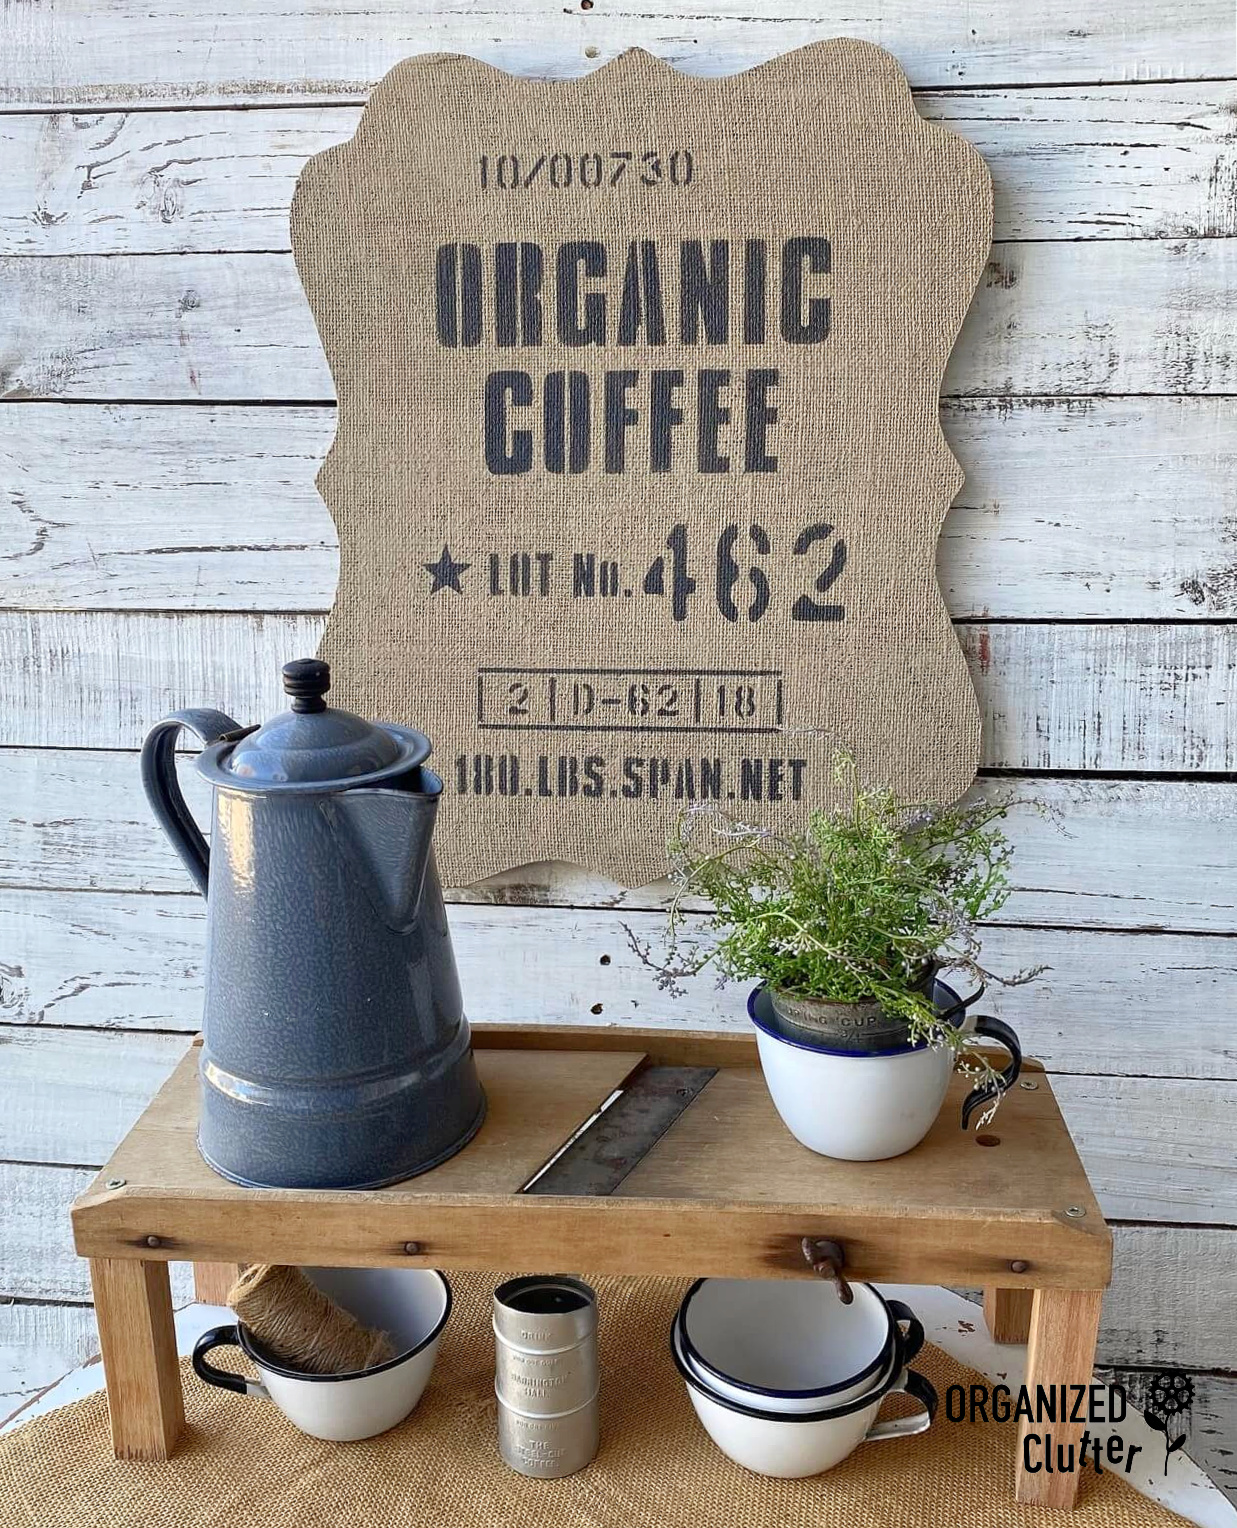 Coffee bean sack bulletin board by Organized Clutter, featured on DIY Salvaged Junk Projects 570 on Funky Junk!